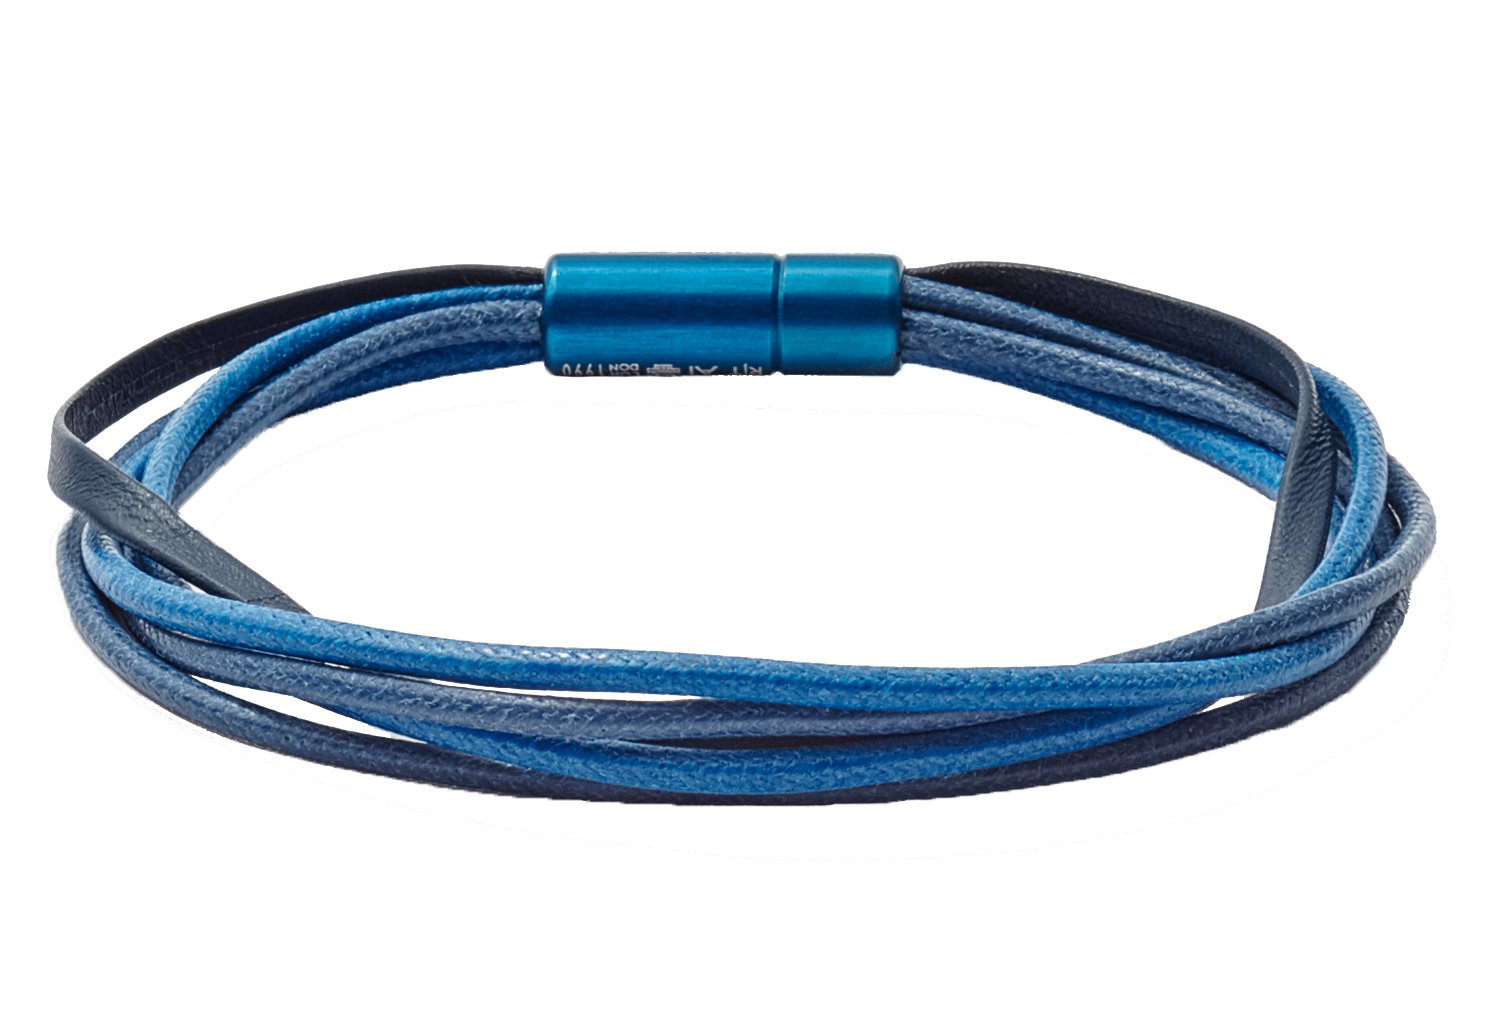 Tateossian RT Italian Leather and Wax Corded Bracelet - Blue, Large 19.5cm